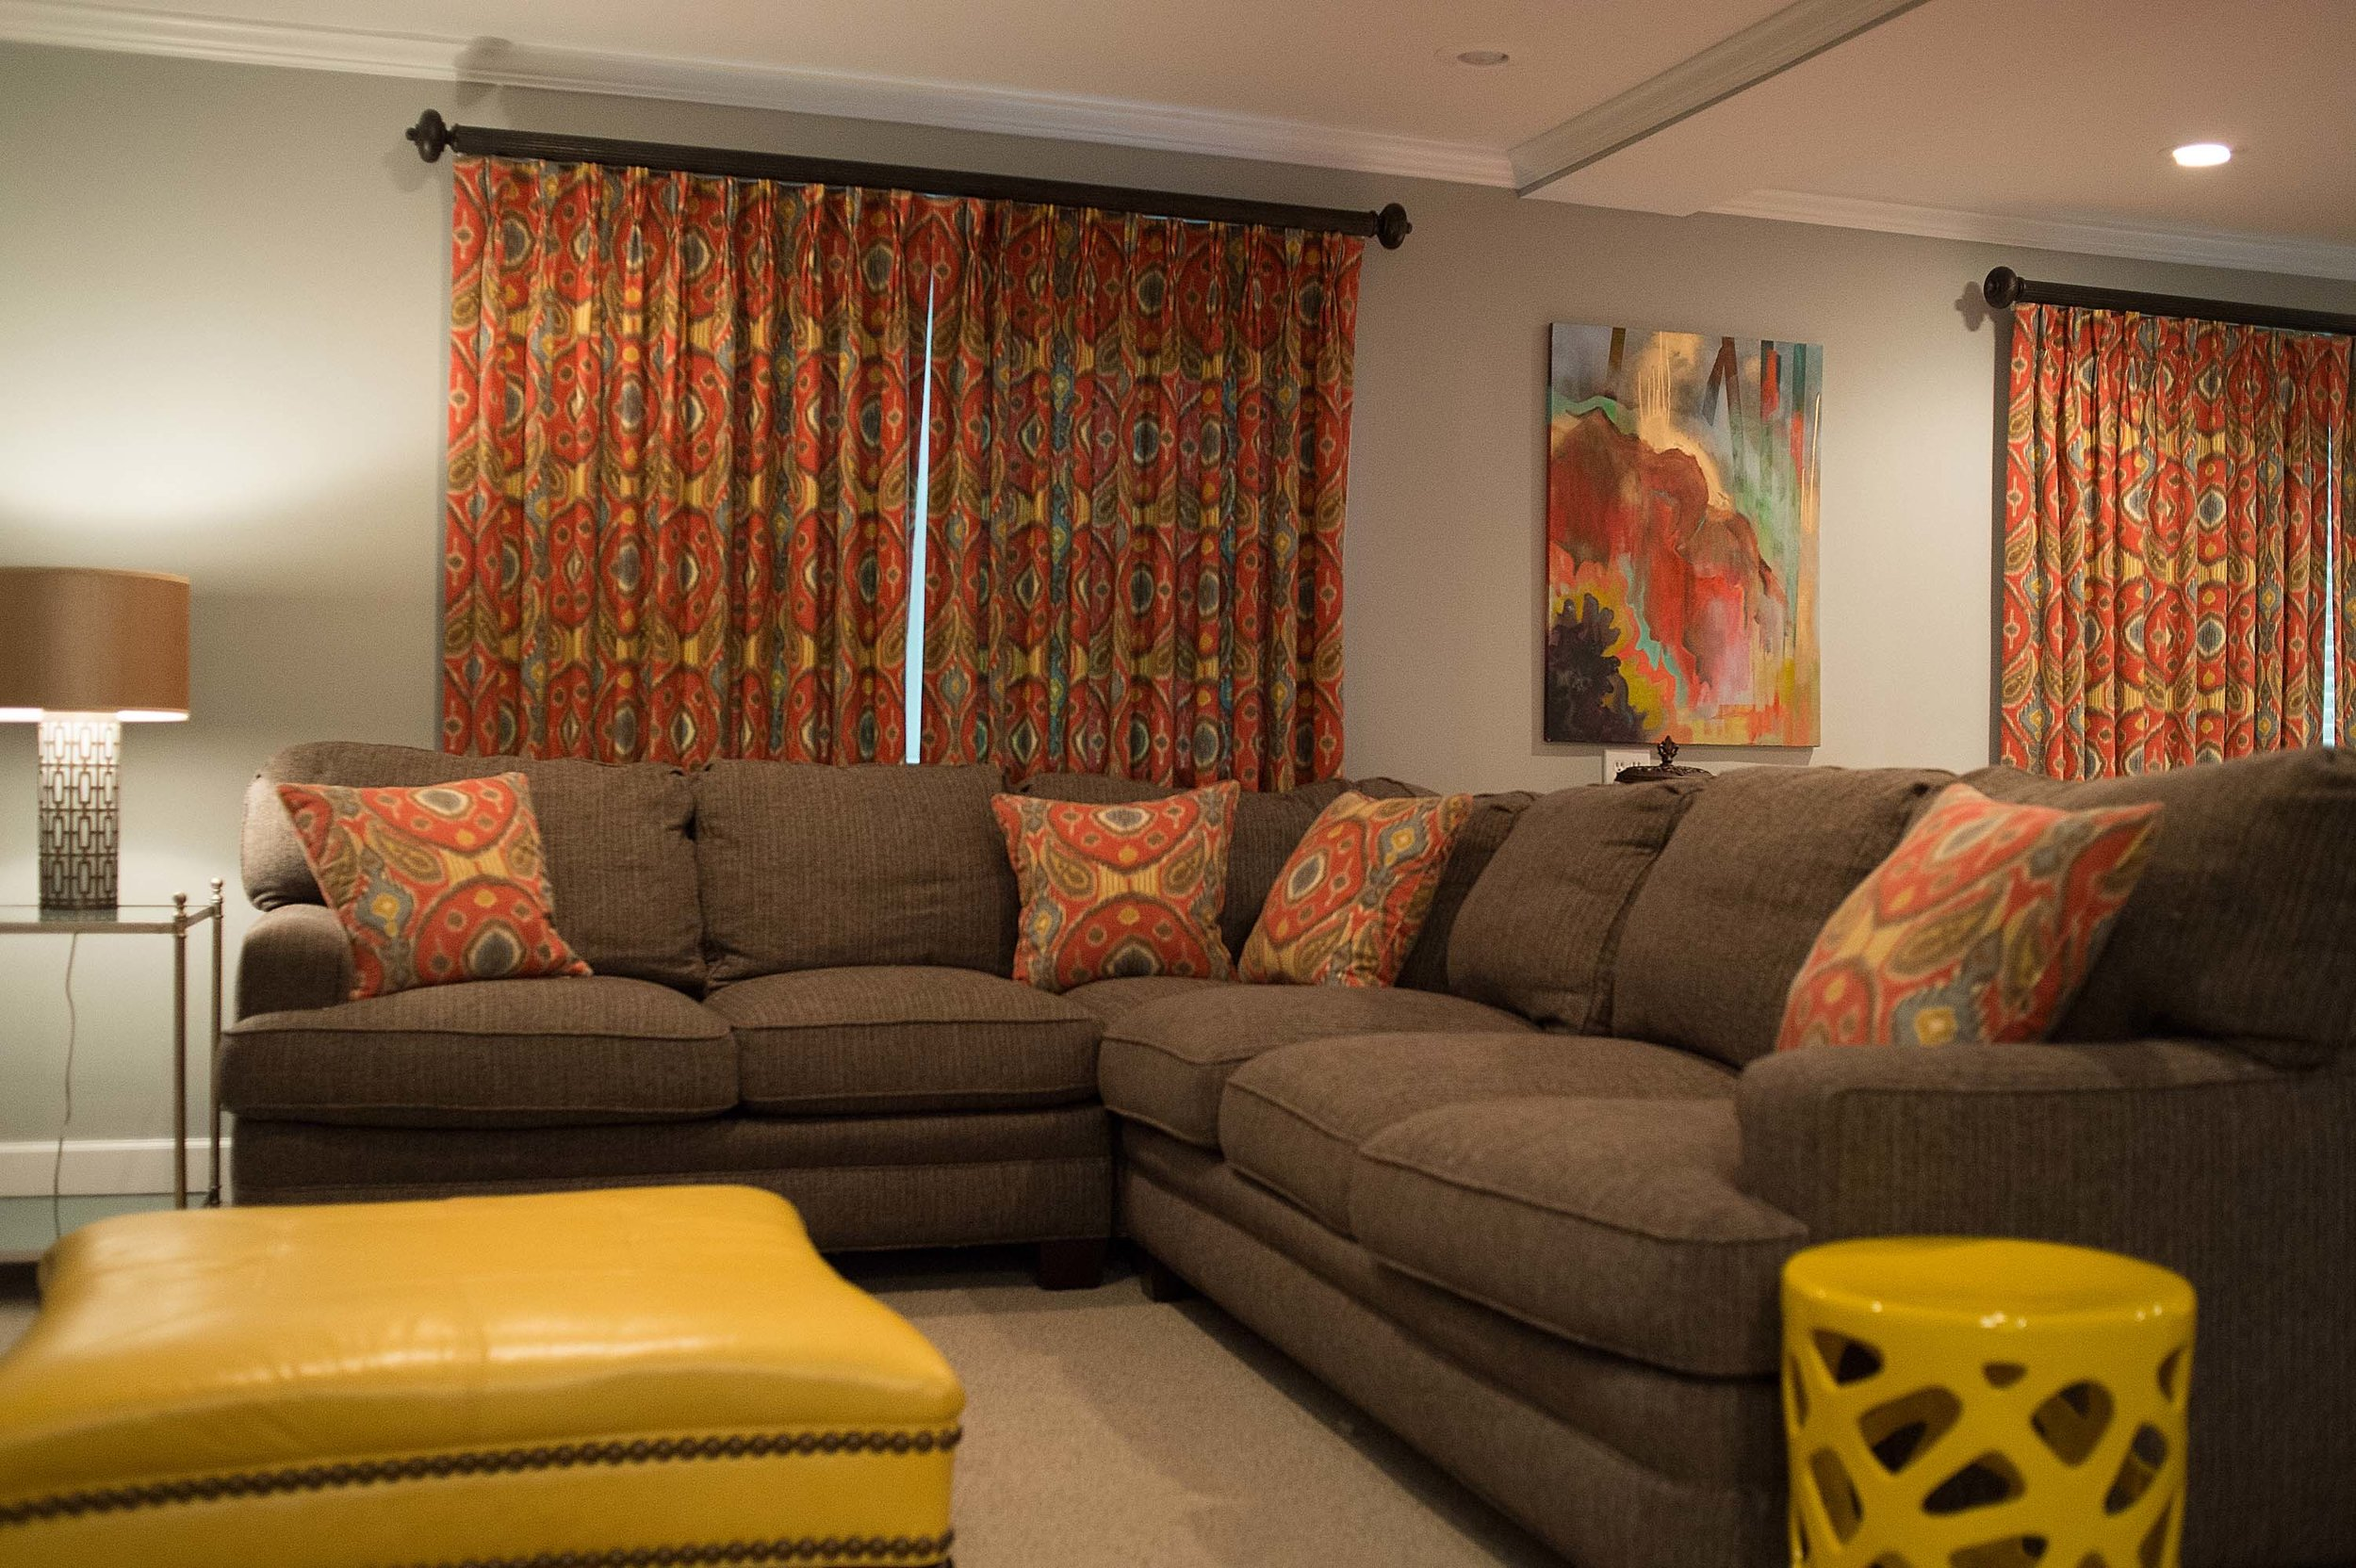 Living room with pillows and curtains of the same fabric, large sofa and artwork on the wall